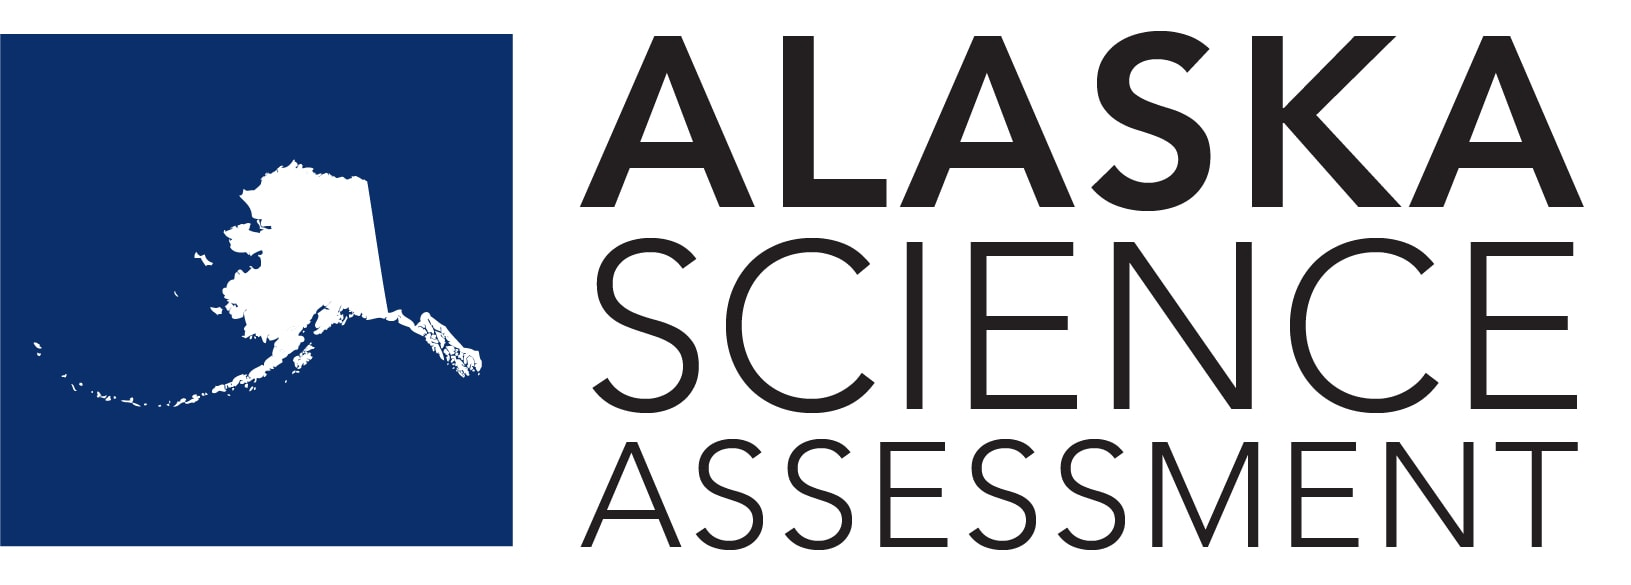 Alaska Science Assessment